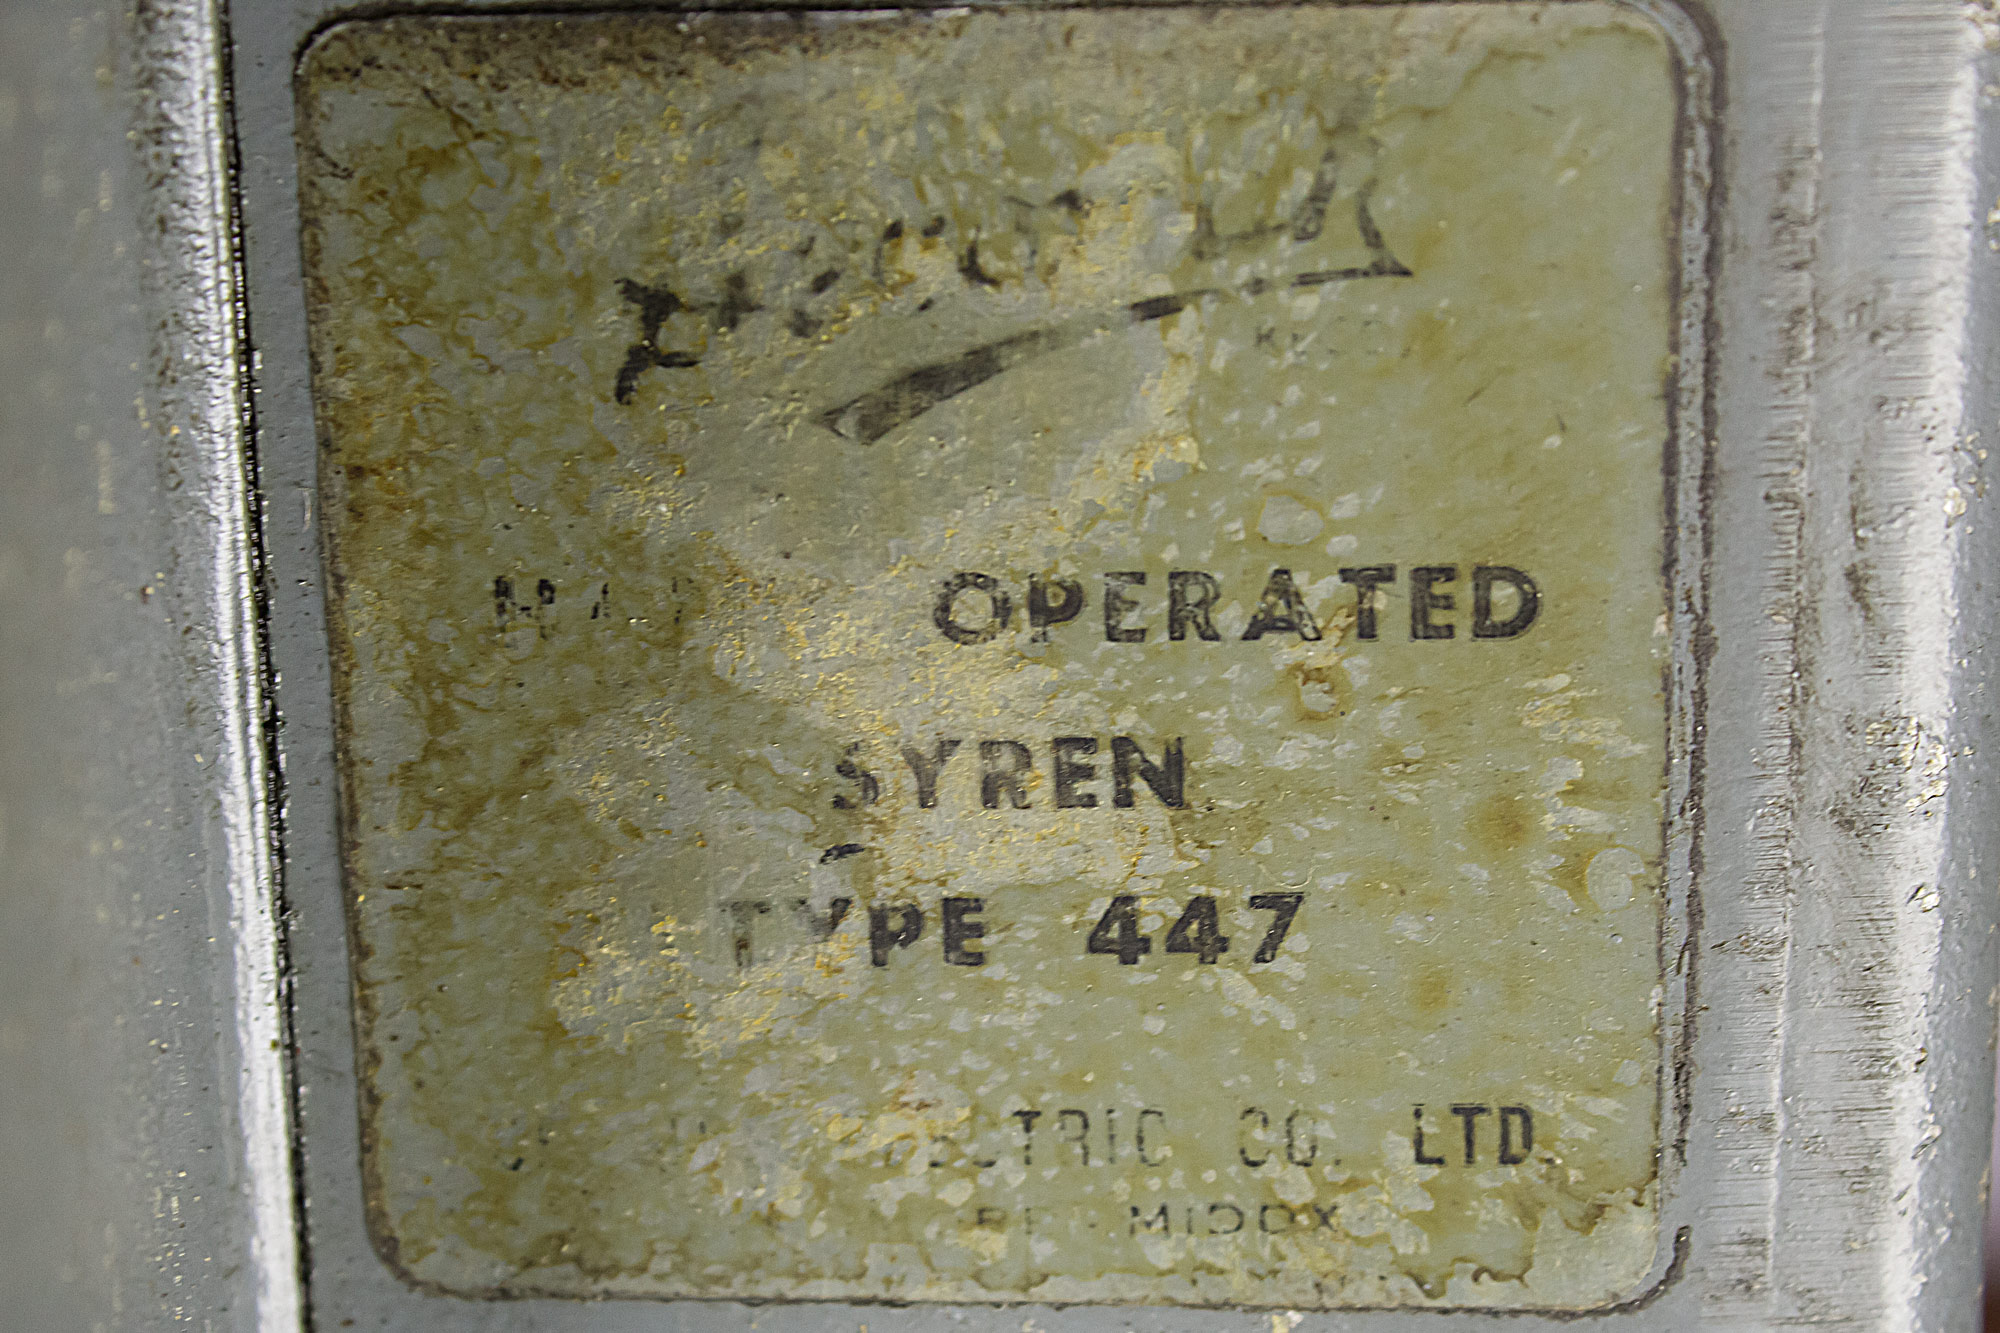 Siren label.jpg